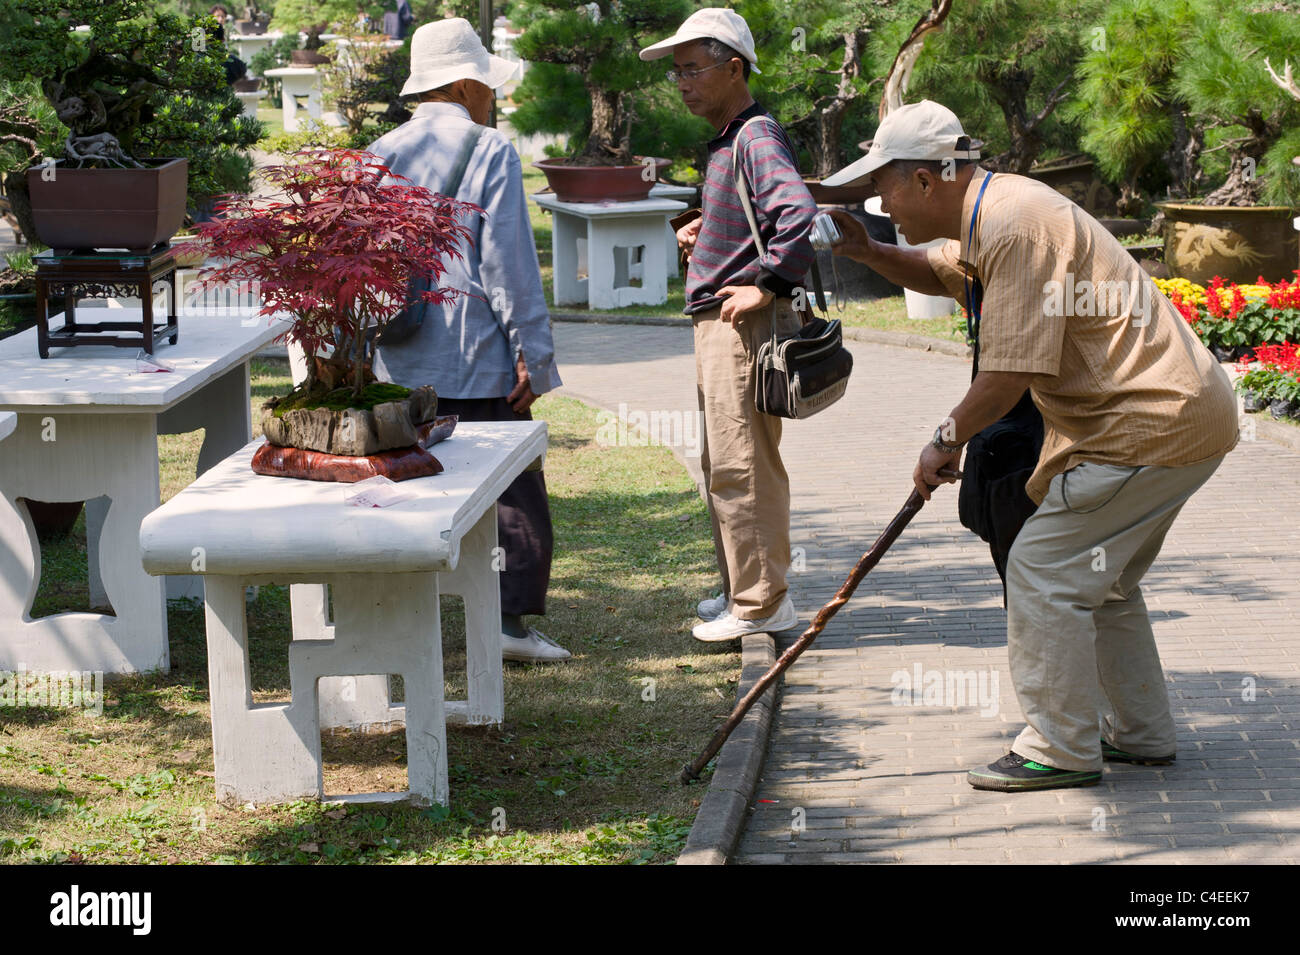 People admiring the variety of Penjing, miniature landscapes on display in a  Park in Nanjing, China - Stock Image